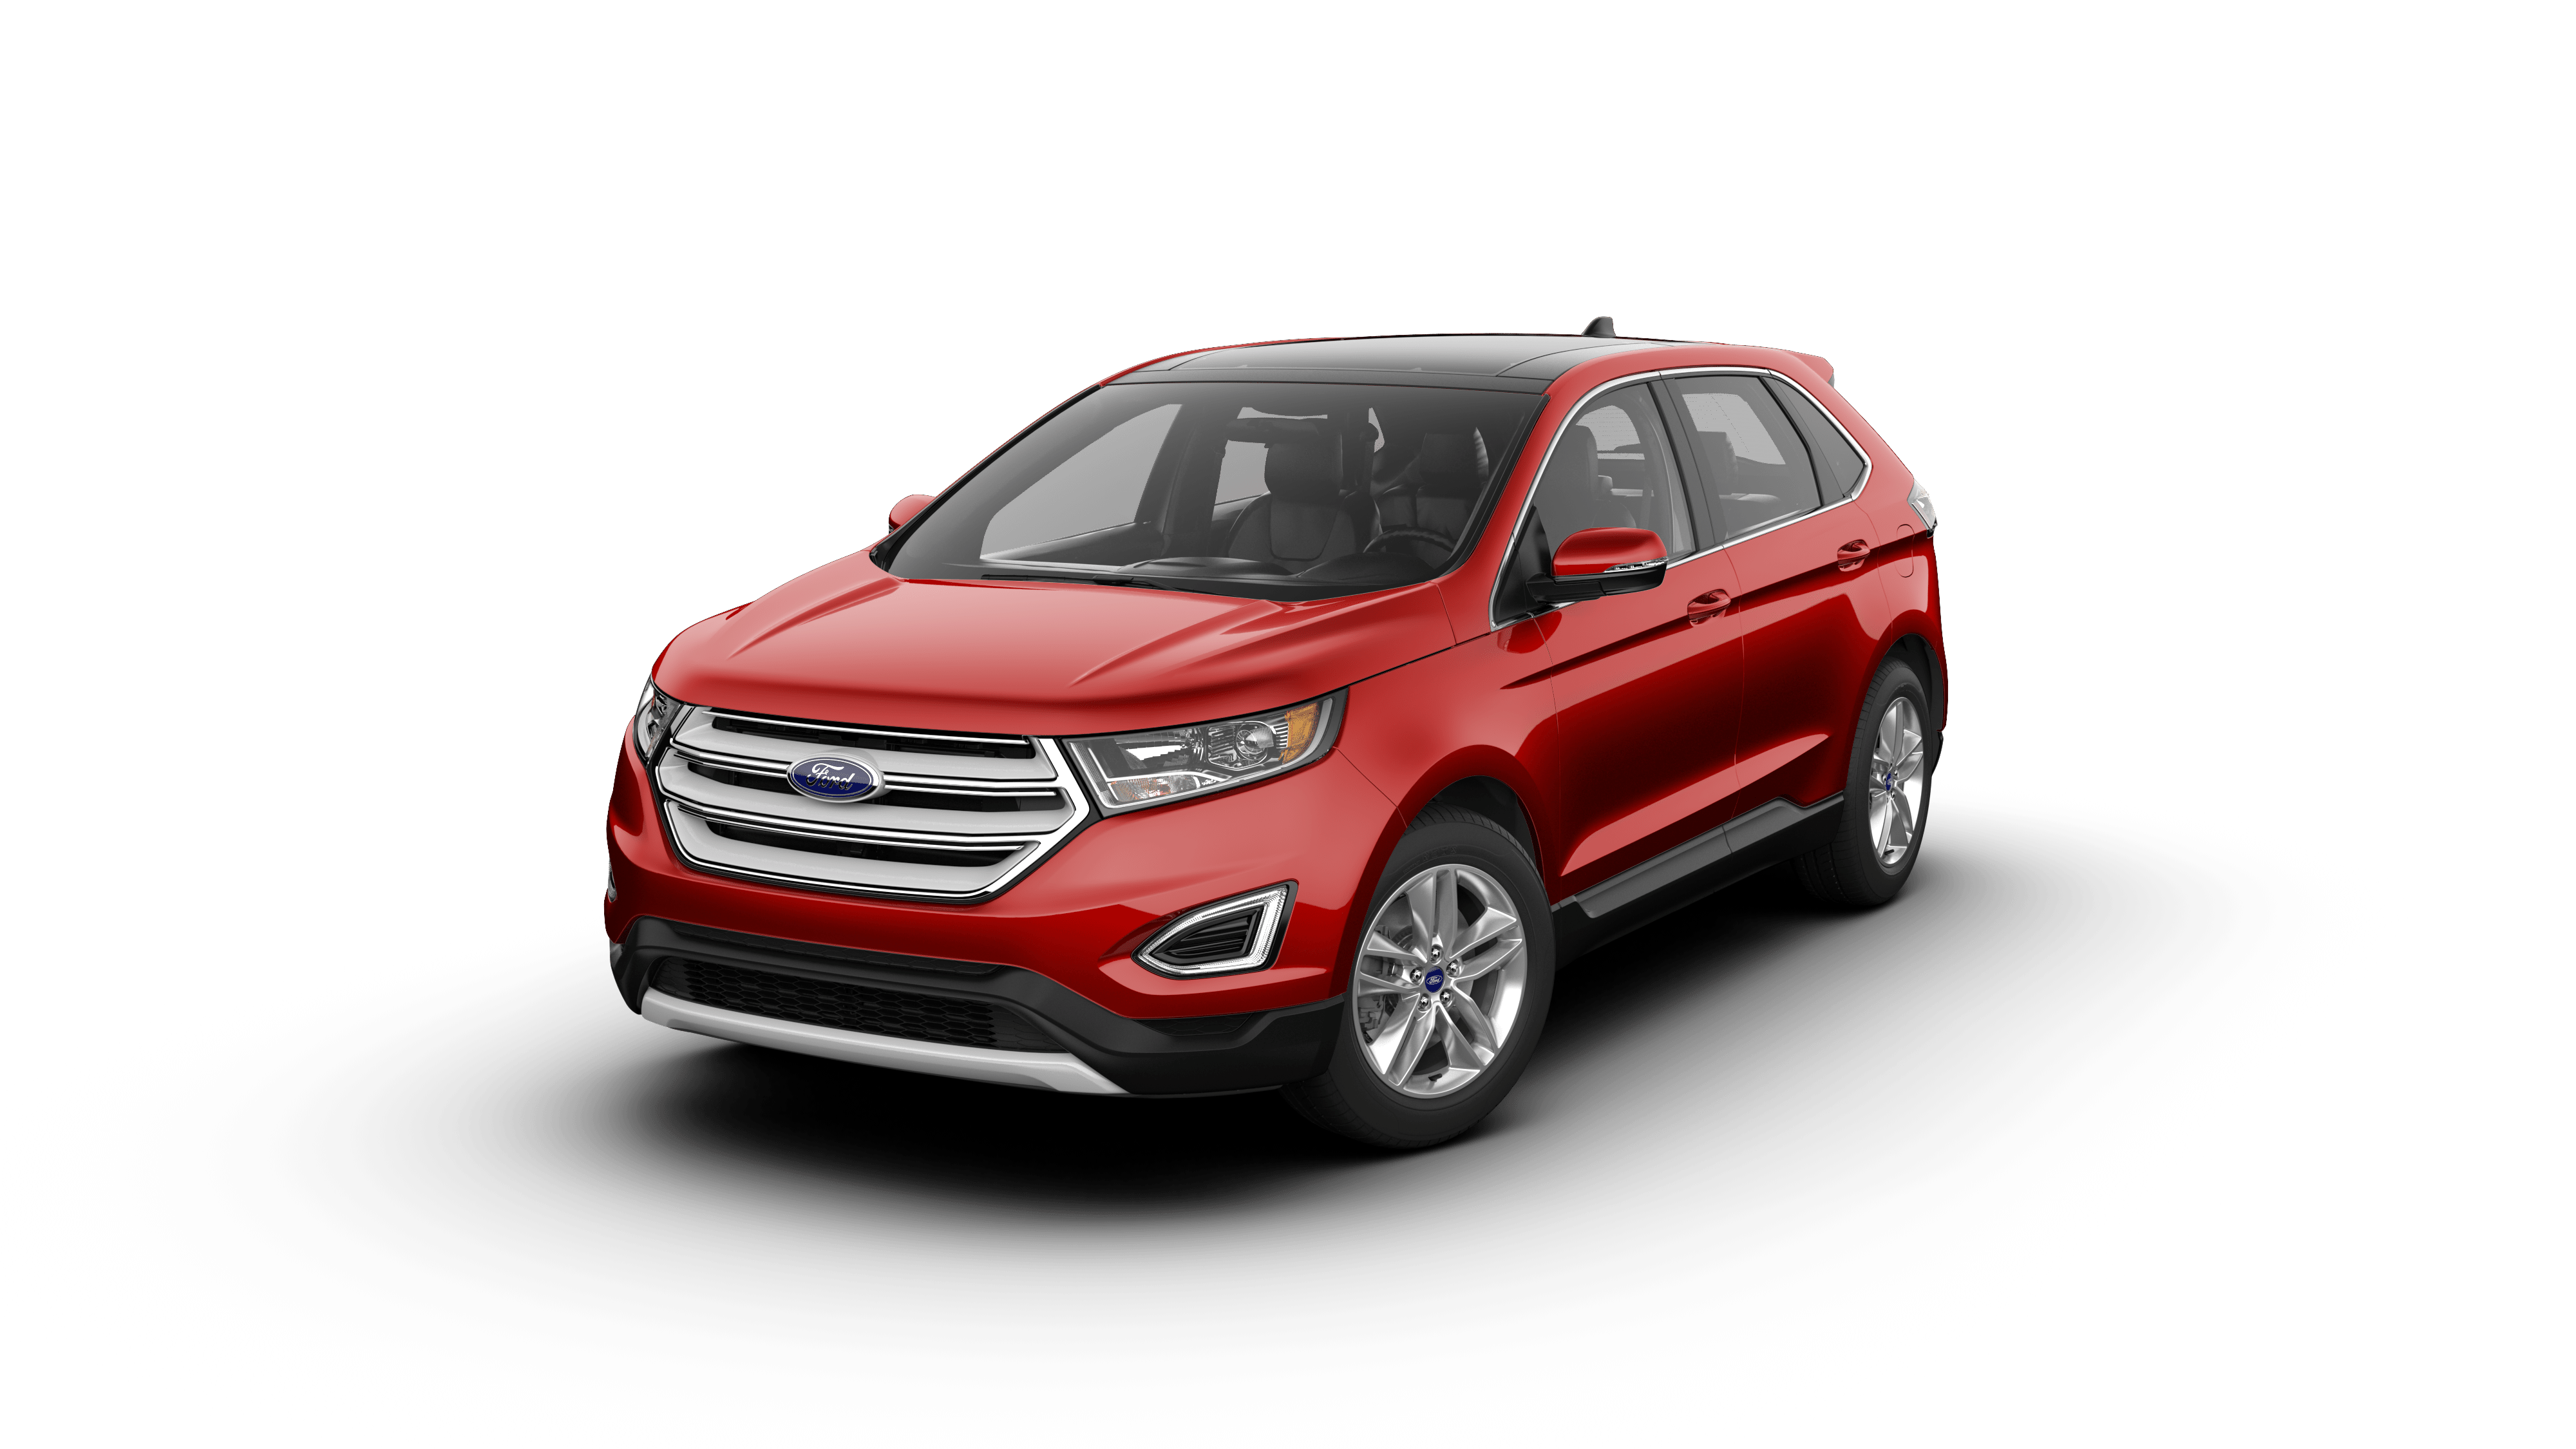 Ford Edge For Sale In Sierra Vista Fmpkjjbc Lawleys Team Ford